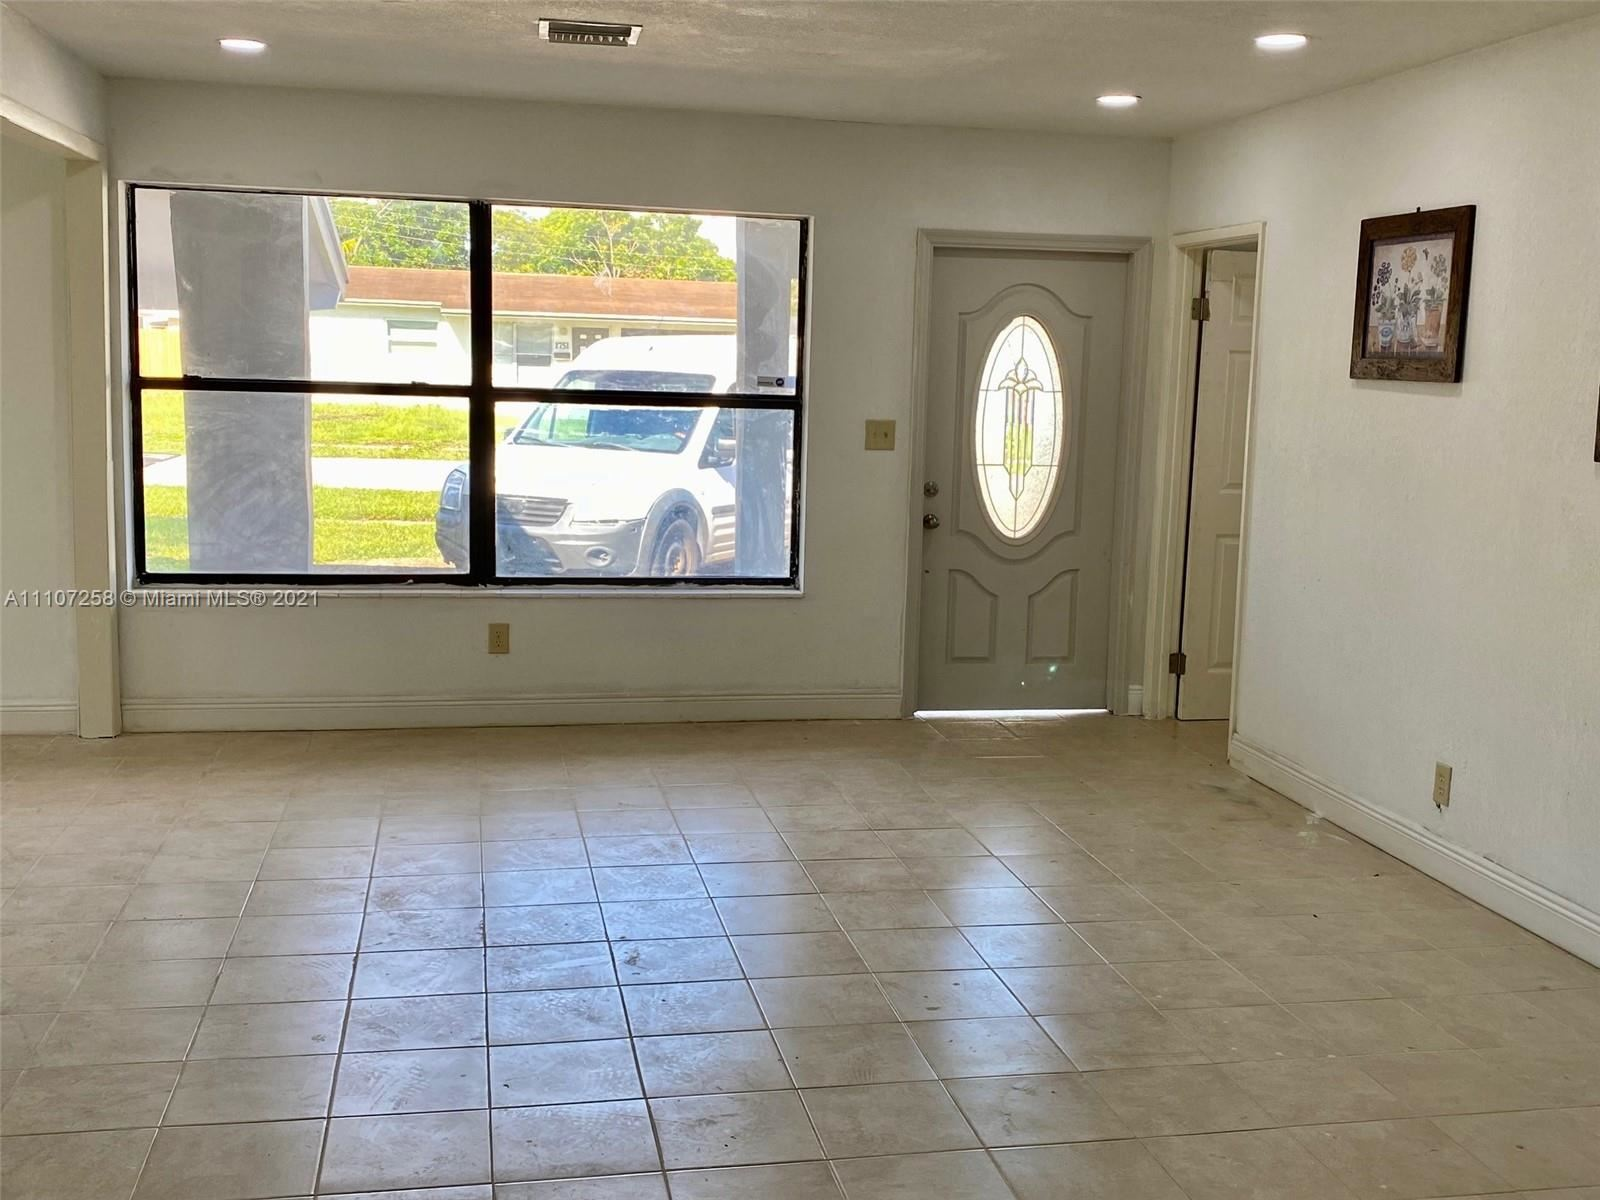 Photo of 1750 NW 27th Ave, Fort Lauderdale, FL 33311 (MLS # A11107258)